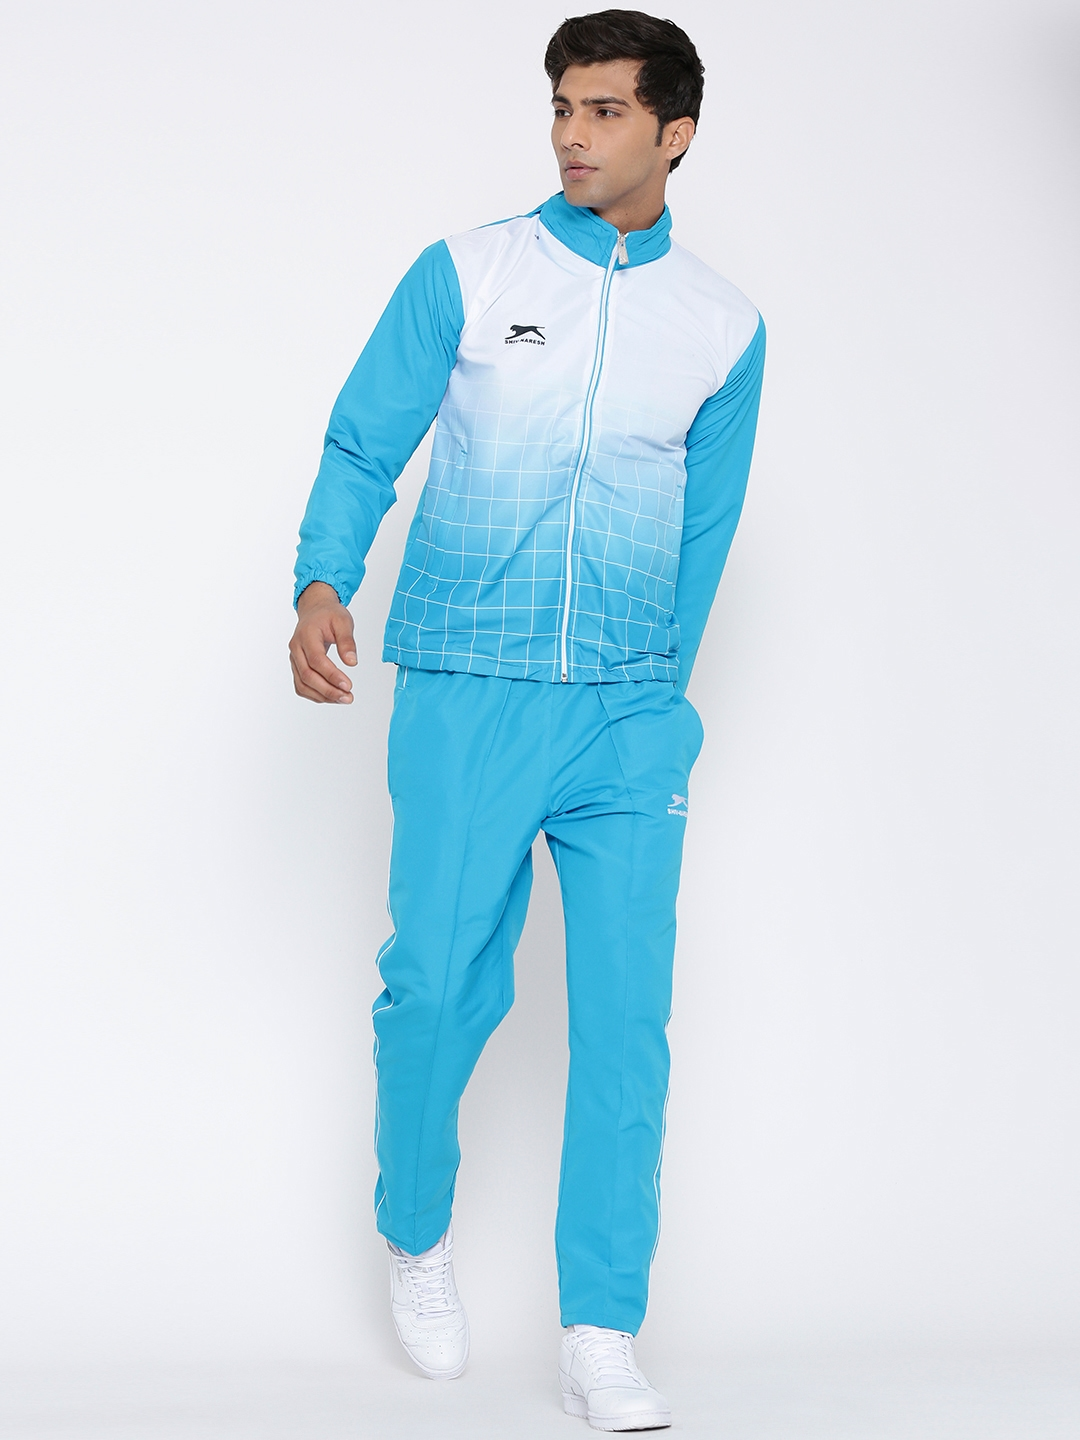 bcaf5c0f5e05 Buy Shiv Naresh Blue Checked Tracksuit With Detachable Hood ...